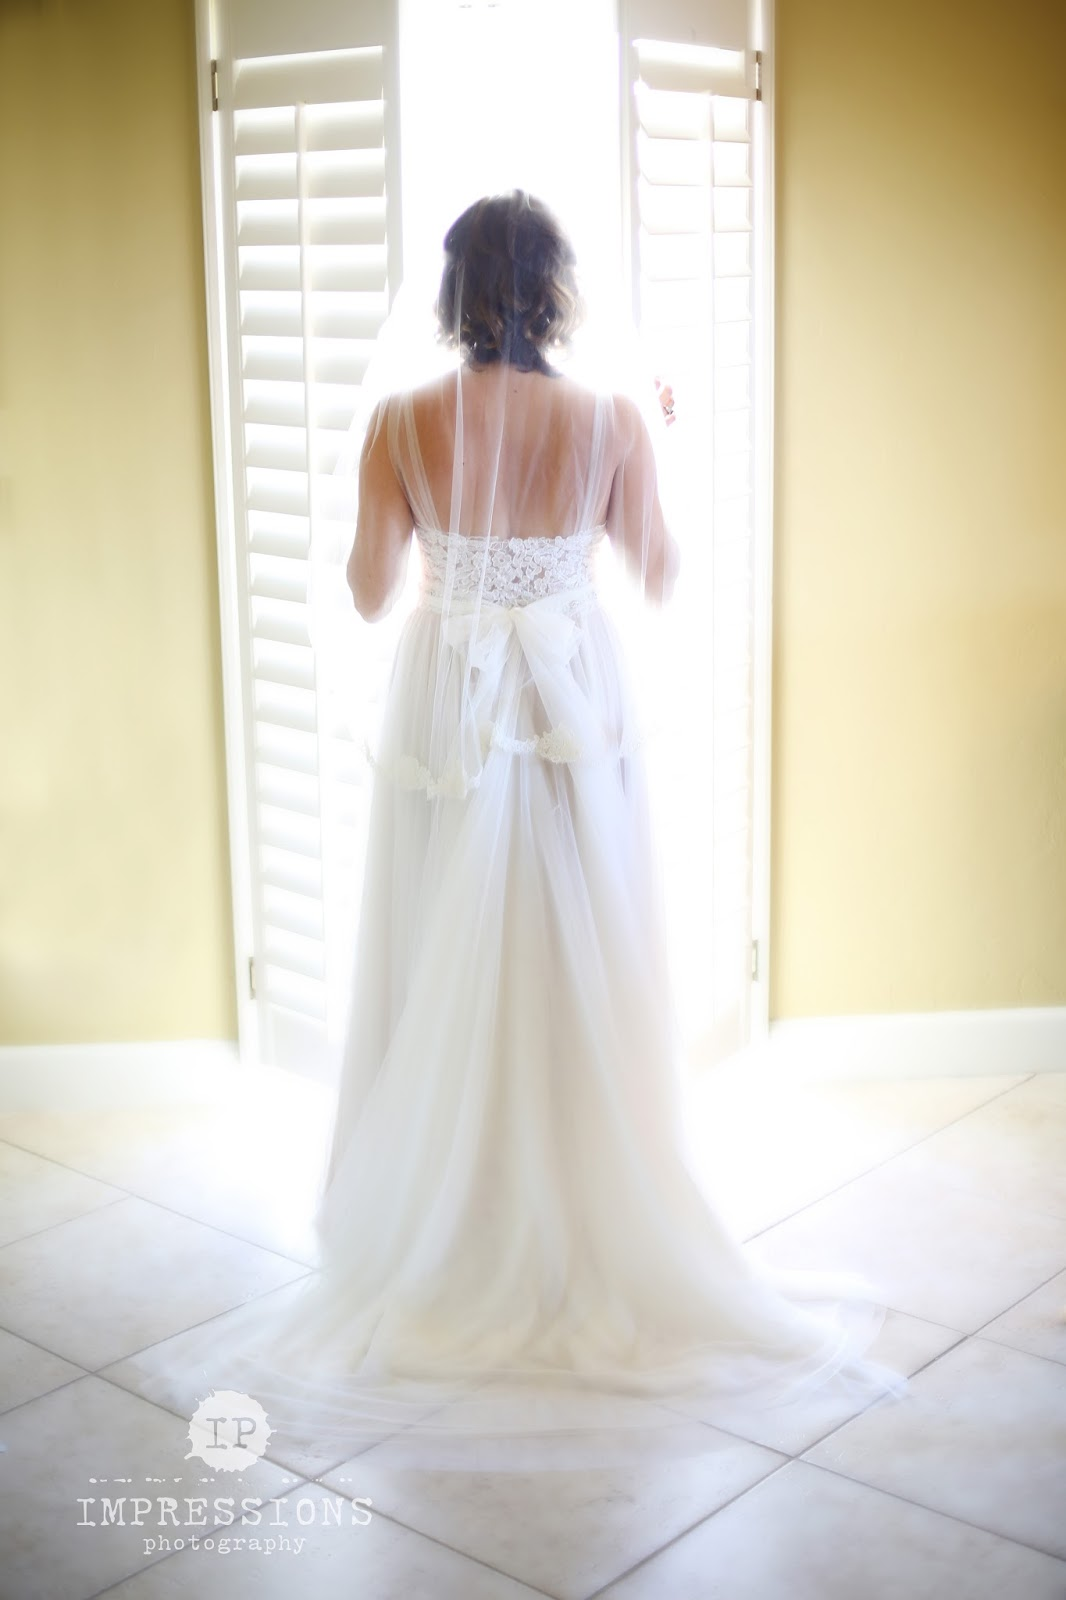 After About A 5 Year Hiatus Ive Updated Our Pinterst Page With Several Recent Weddings Since I Do Photograph So Many Sanibel And Captiva Island